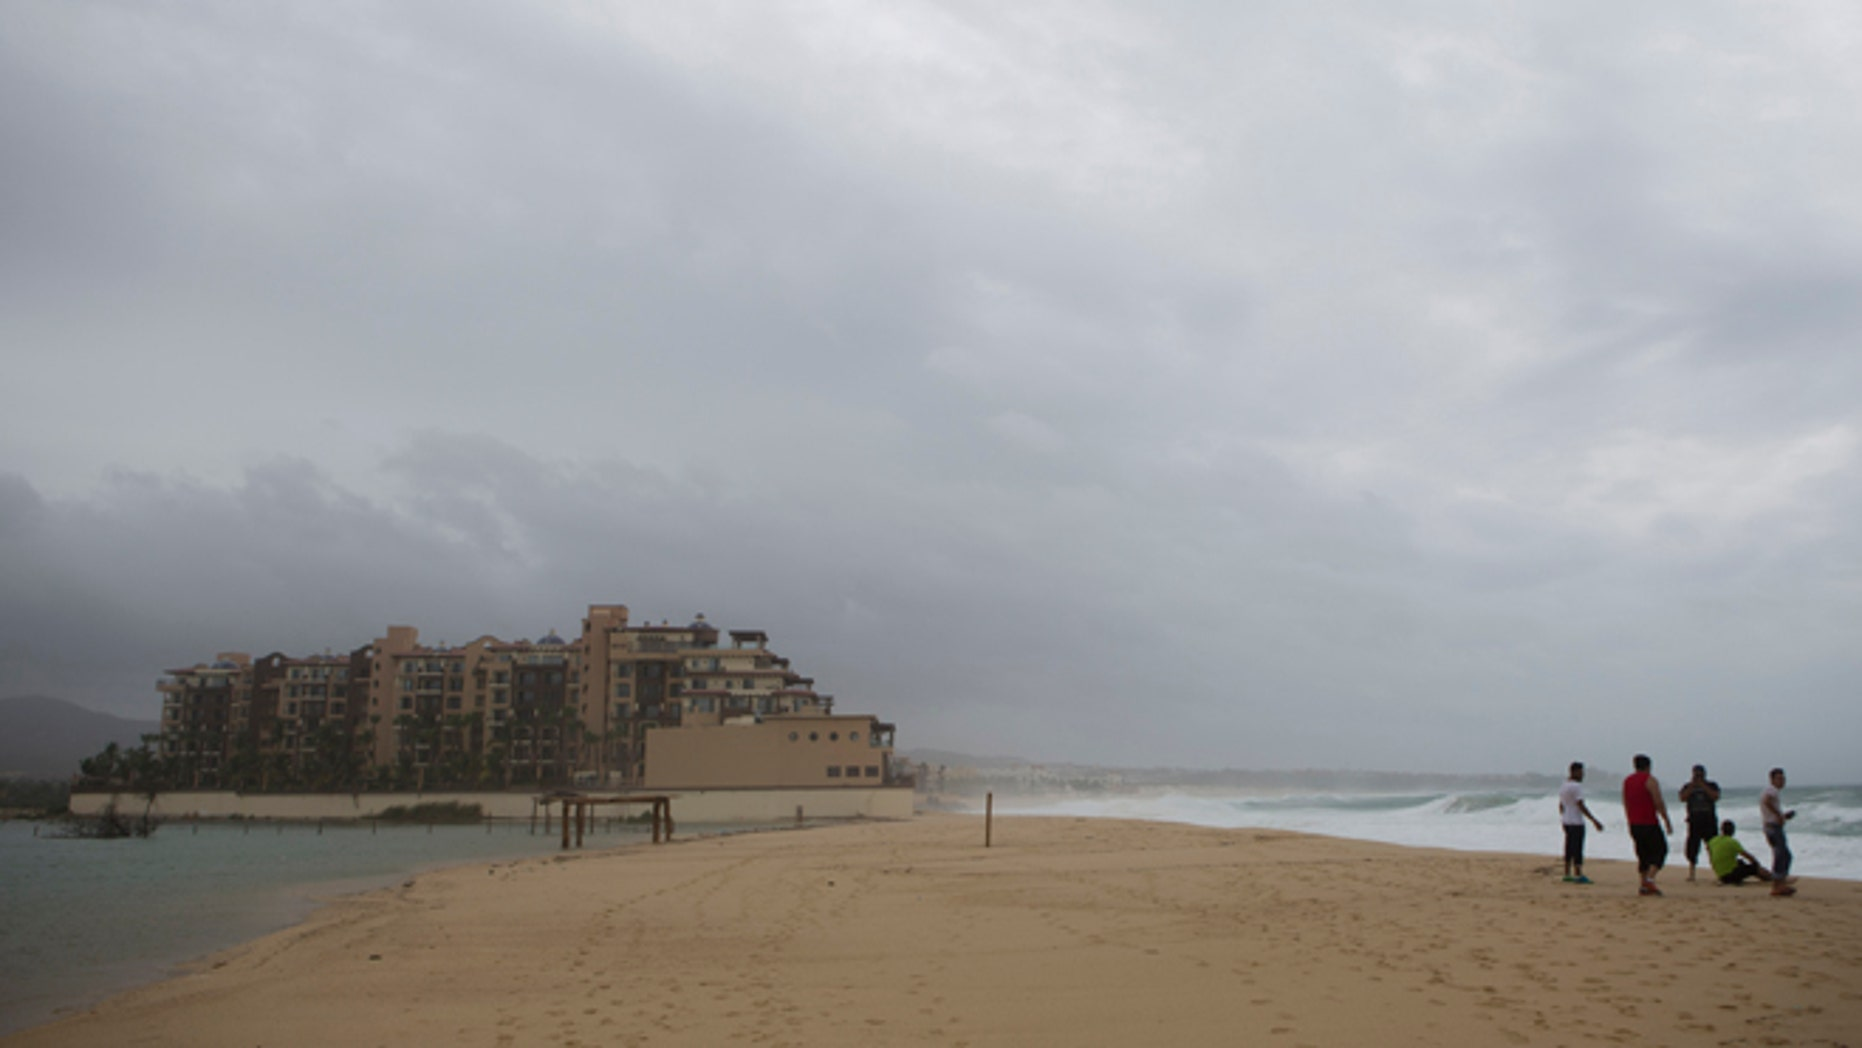 People watch the sea at El Medano Beach before the arrival of Hurricane Blanca, in Cabo San Lucas, Mexico, Sunday June 7, 2015. (AP Photo/Eduardo Verdugo)